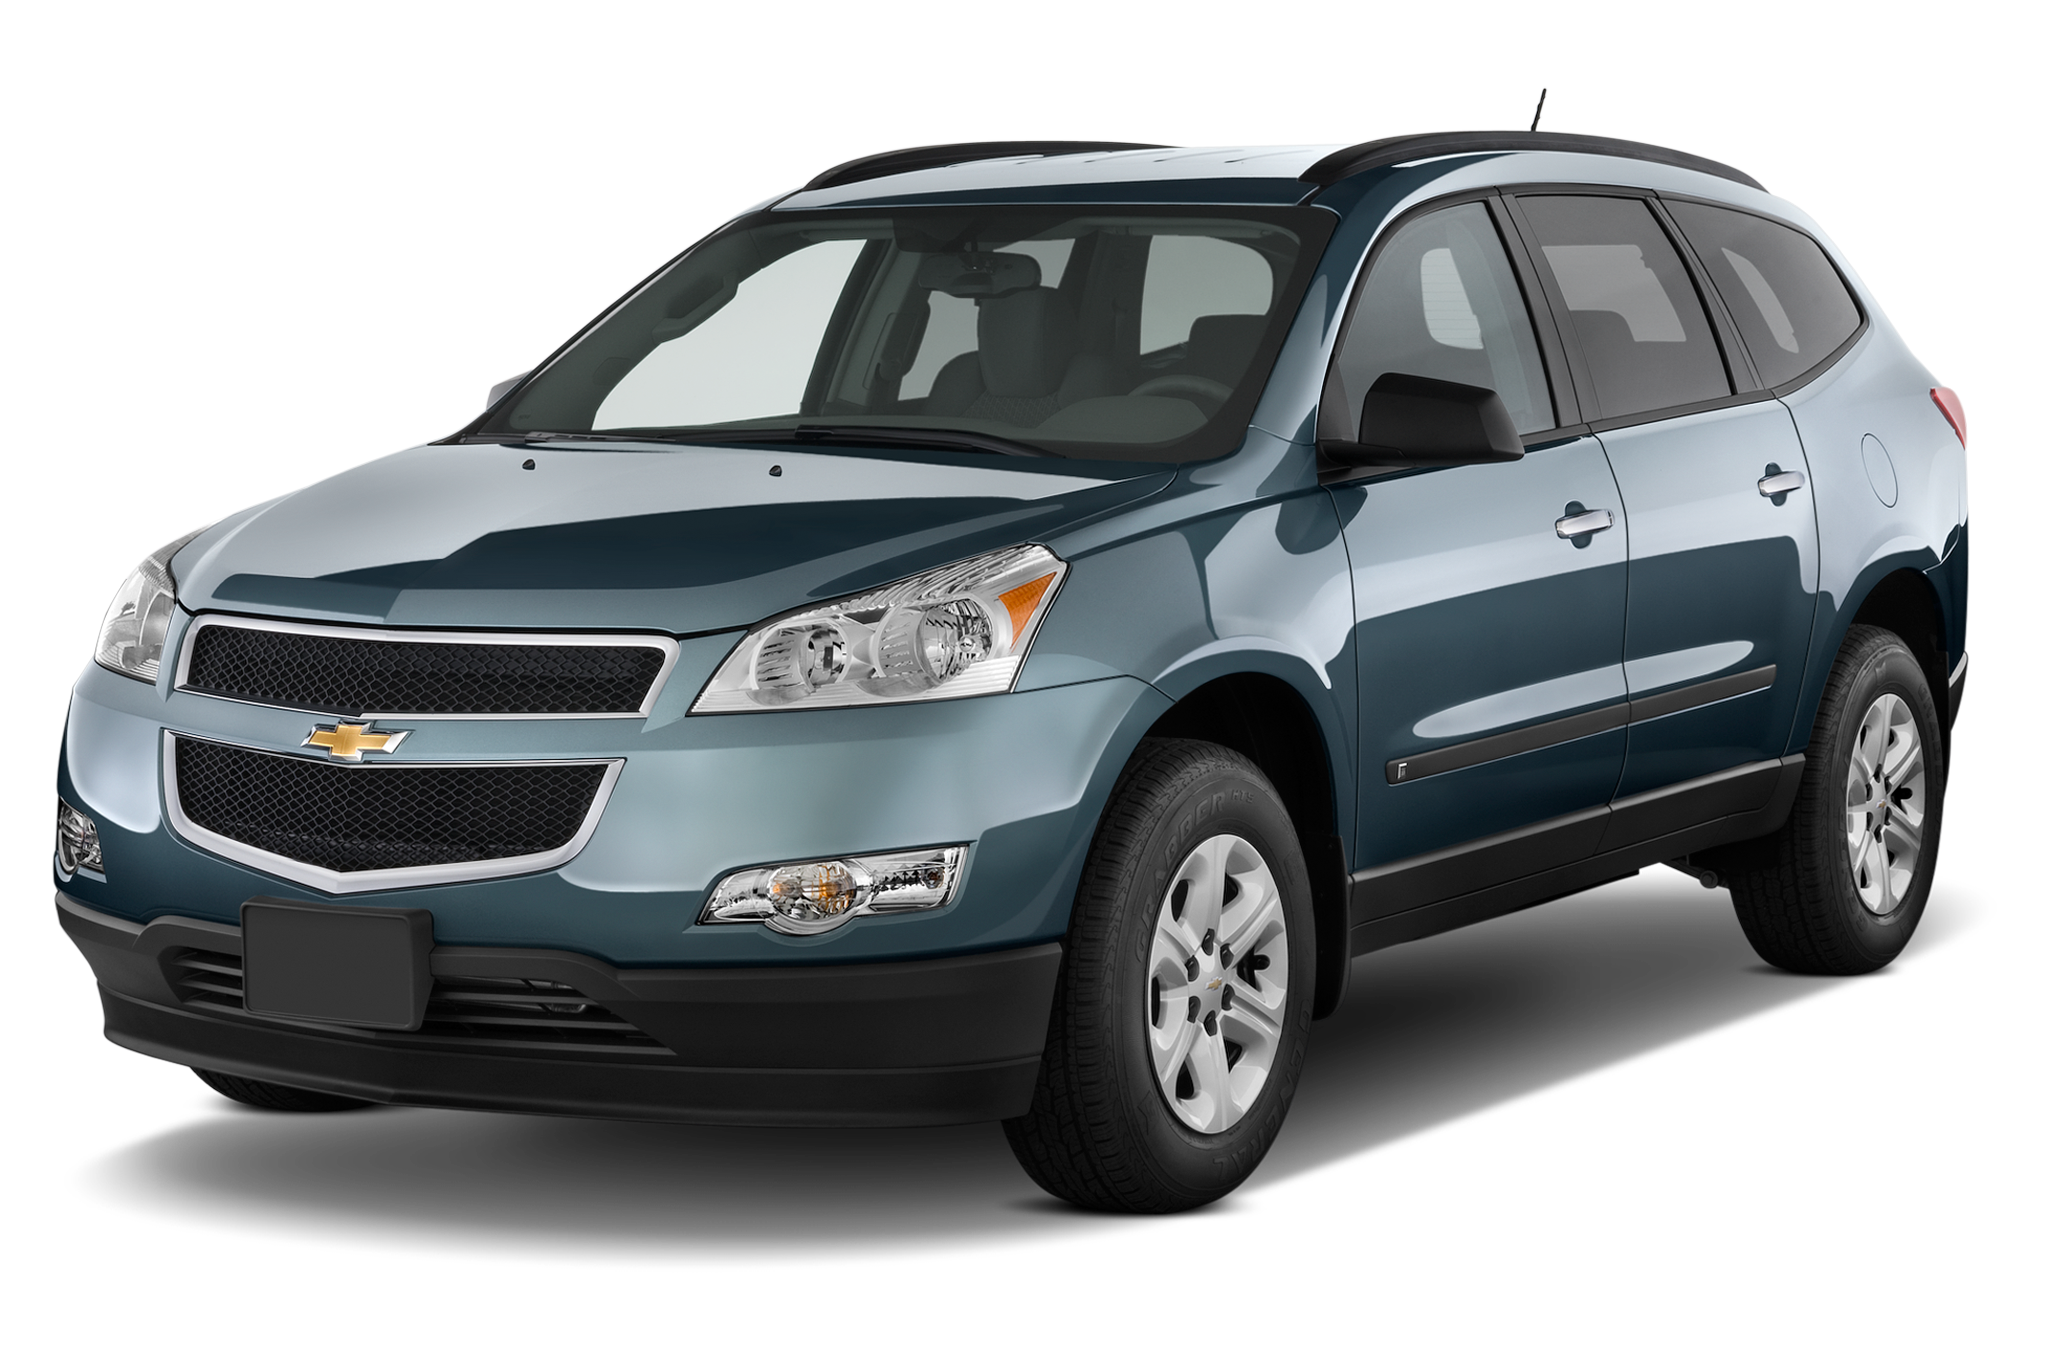 2011 chevrolet traverse ls awd specs and features msn autos. Black Bedroom Furniture Sets. Home Design Ideas